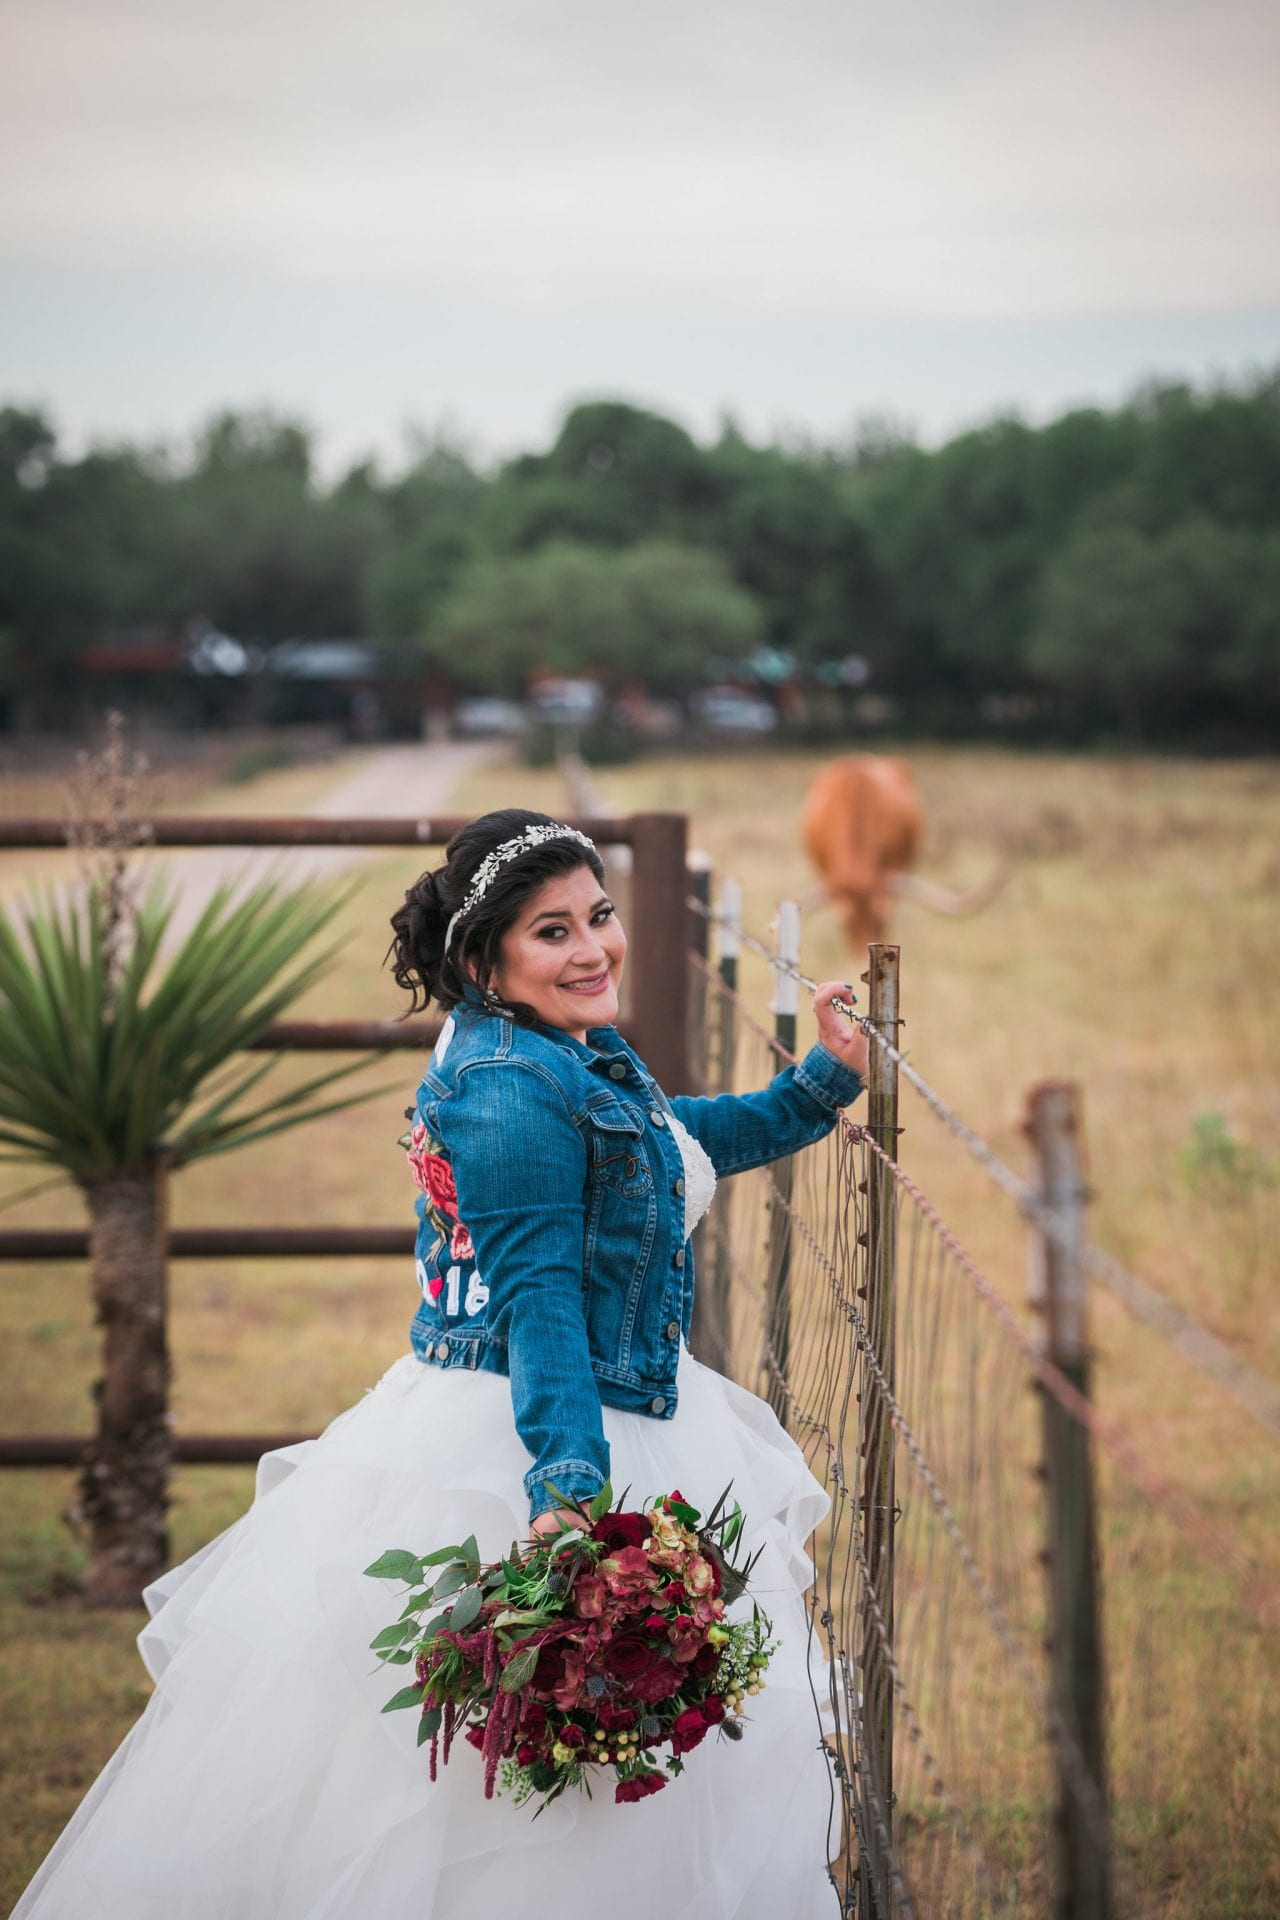 Laura's Bridals at Western Sky in the field at the gate